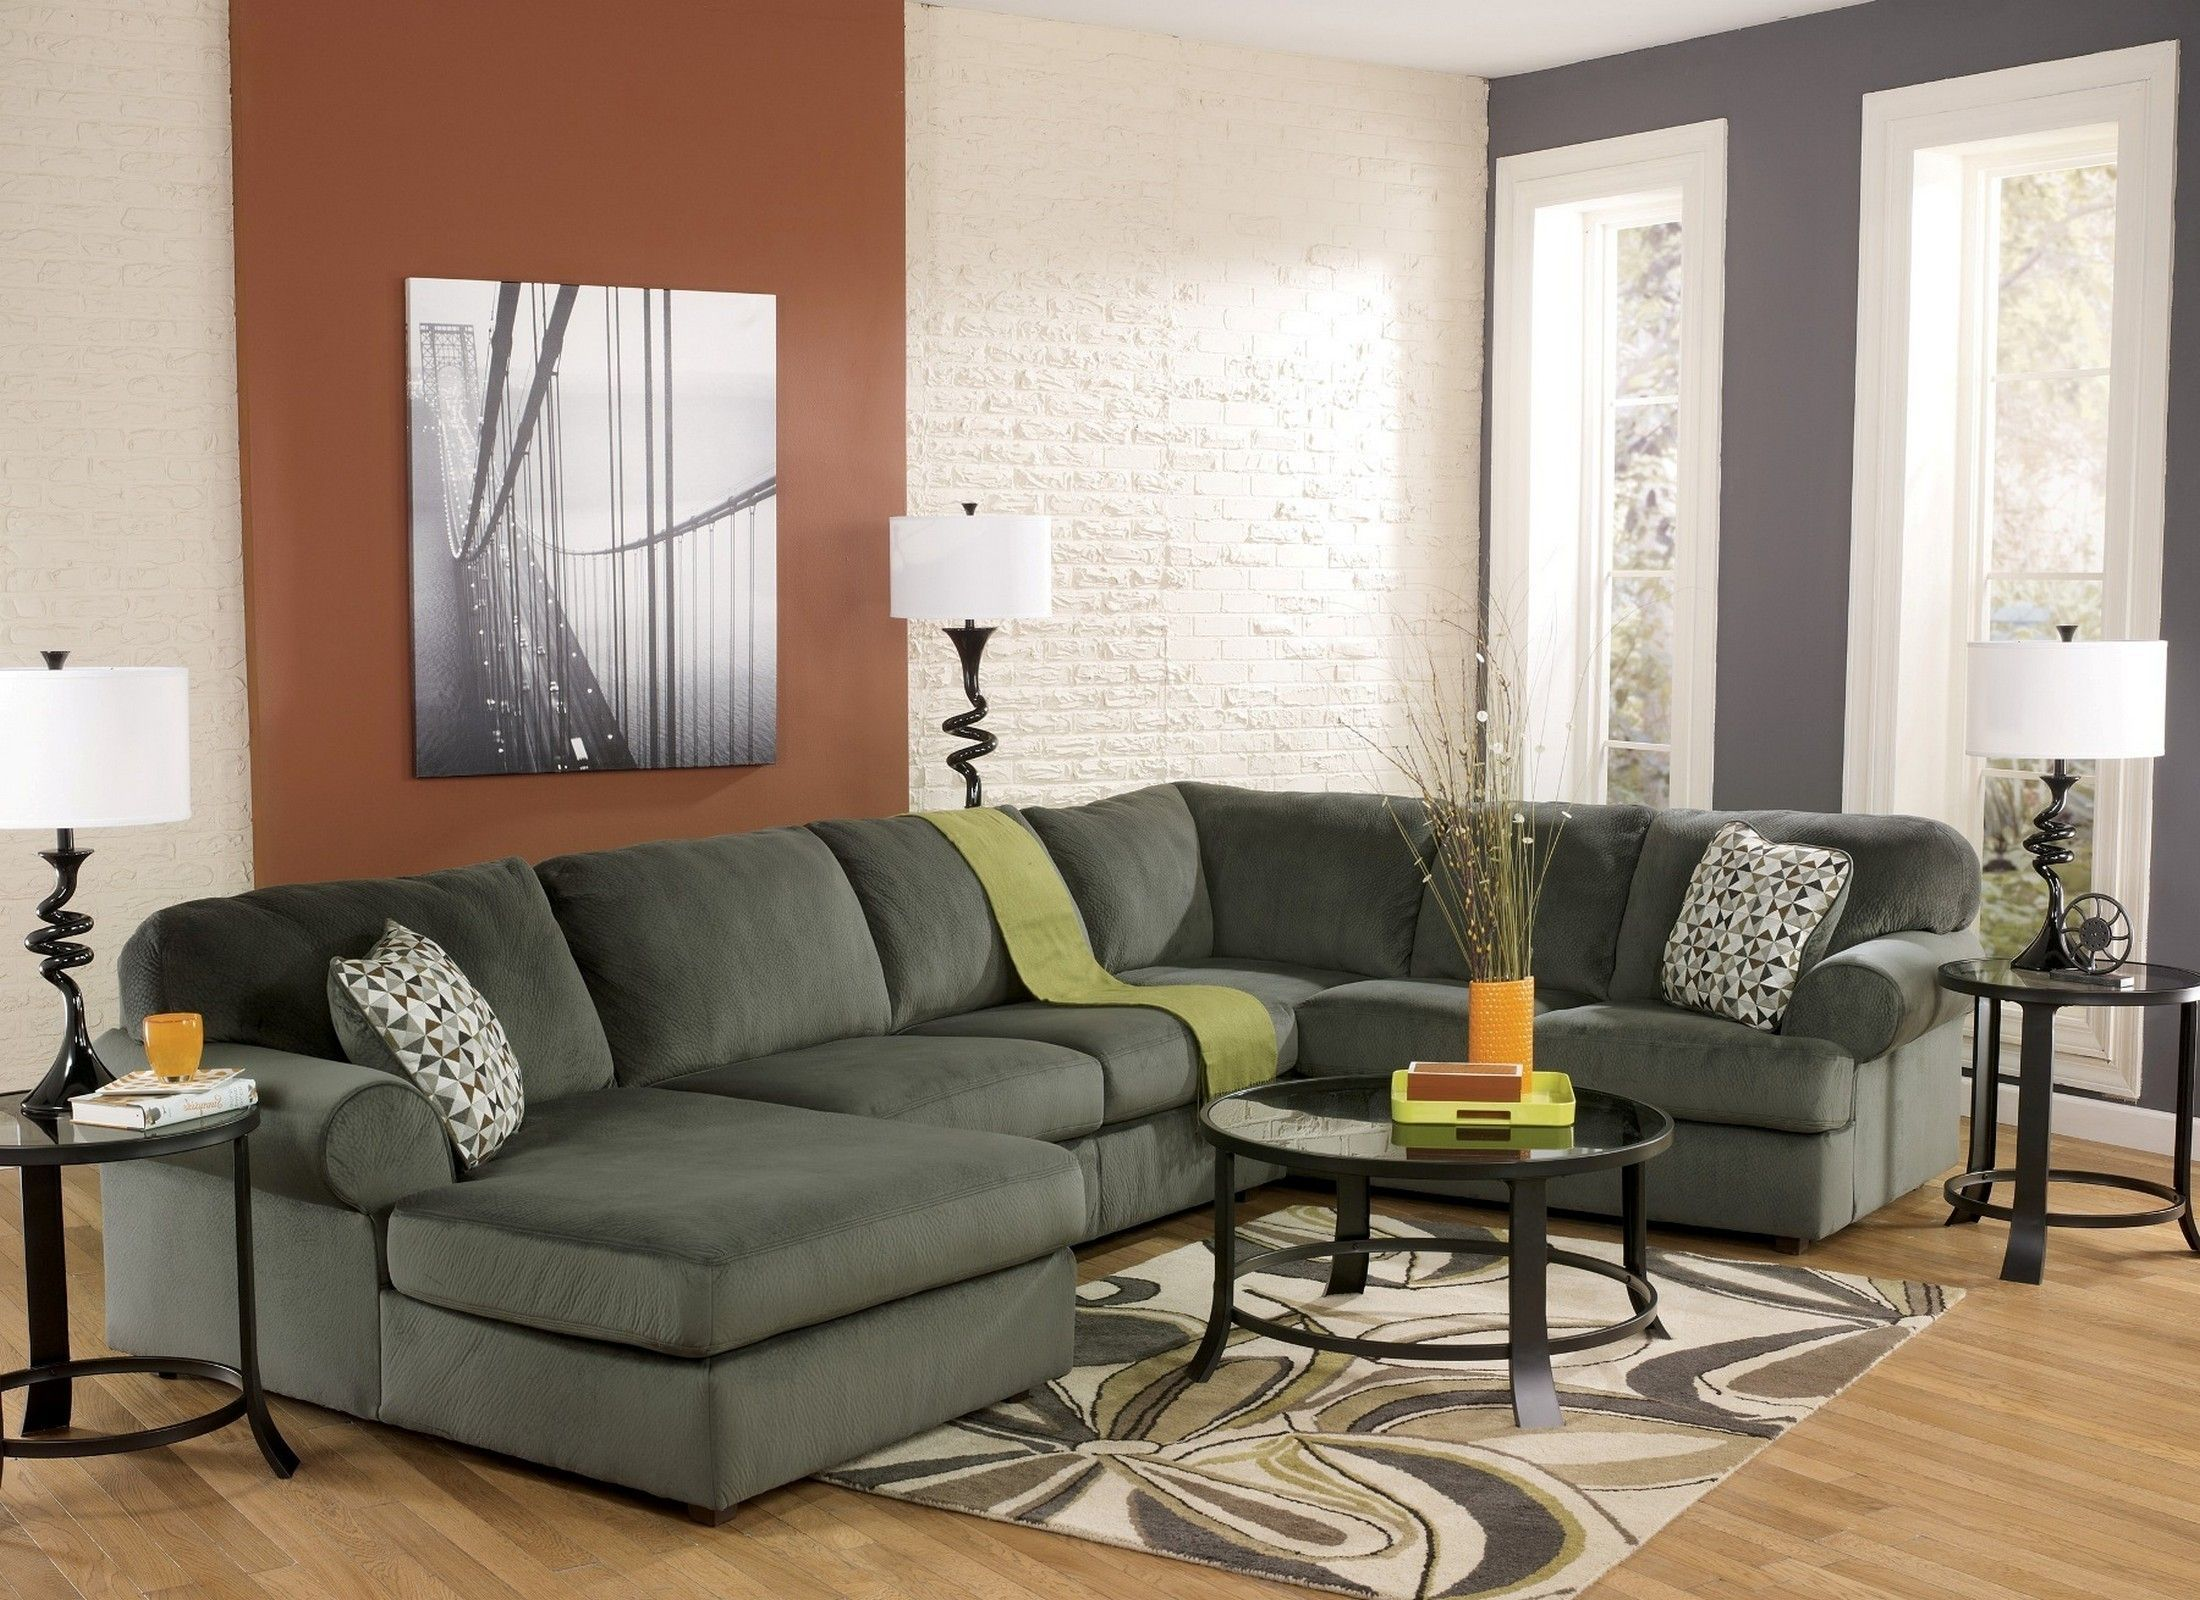 6 Magnetic Interior Design Painting Walls Living Room Ideas In